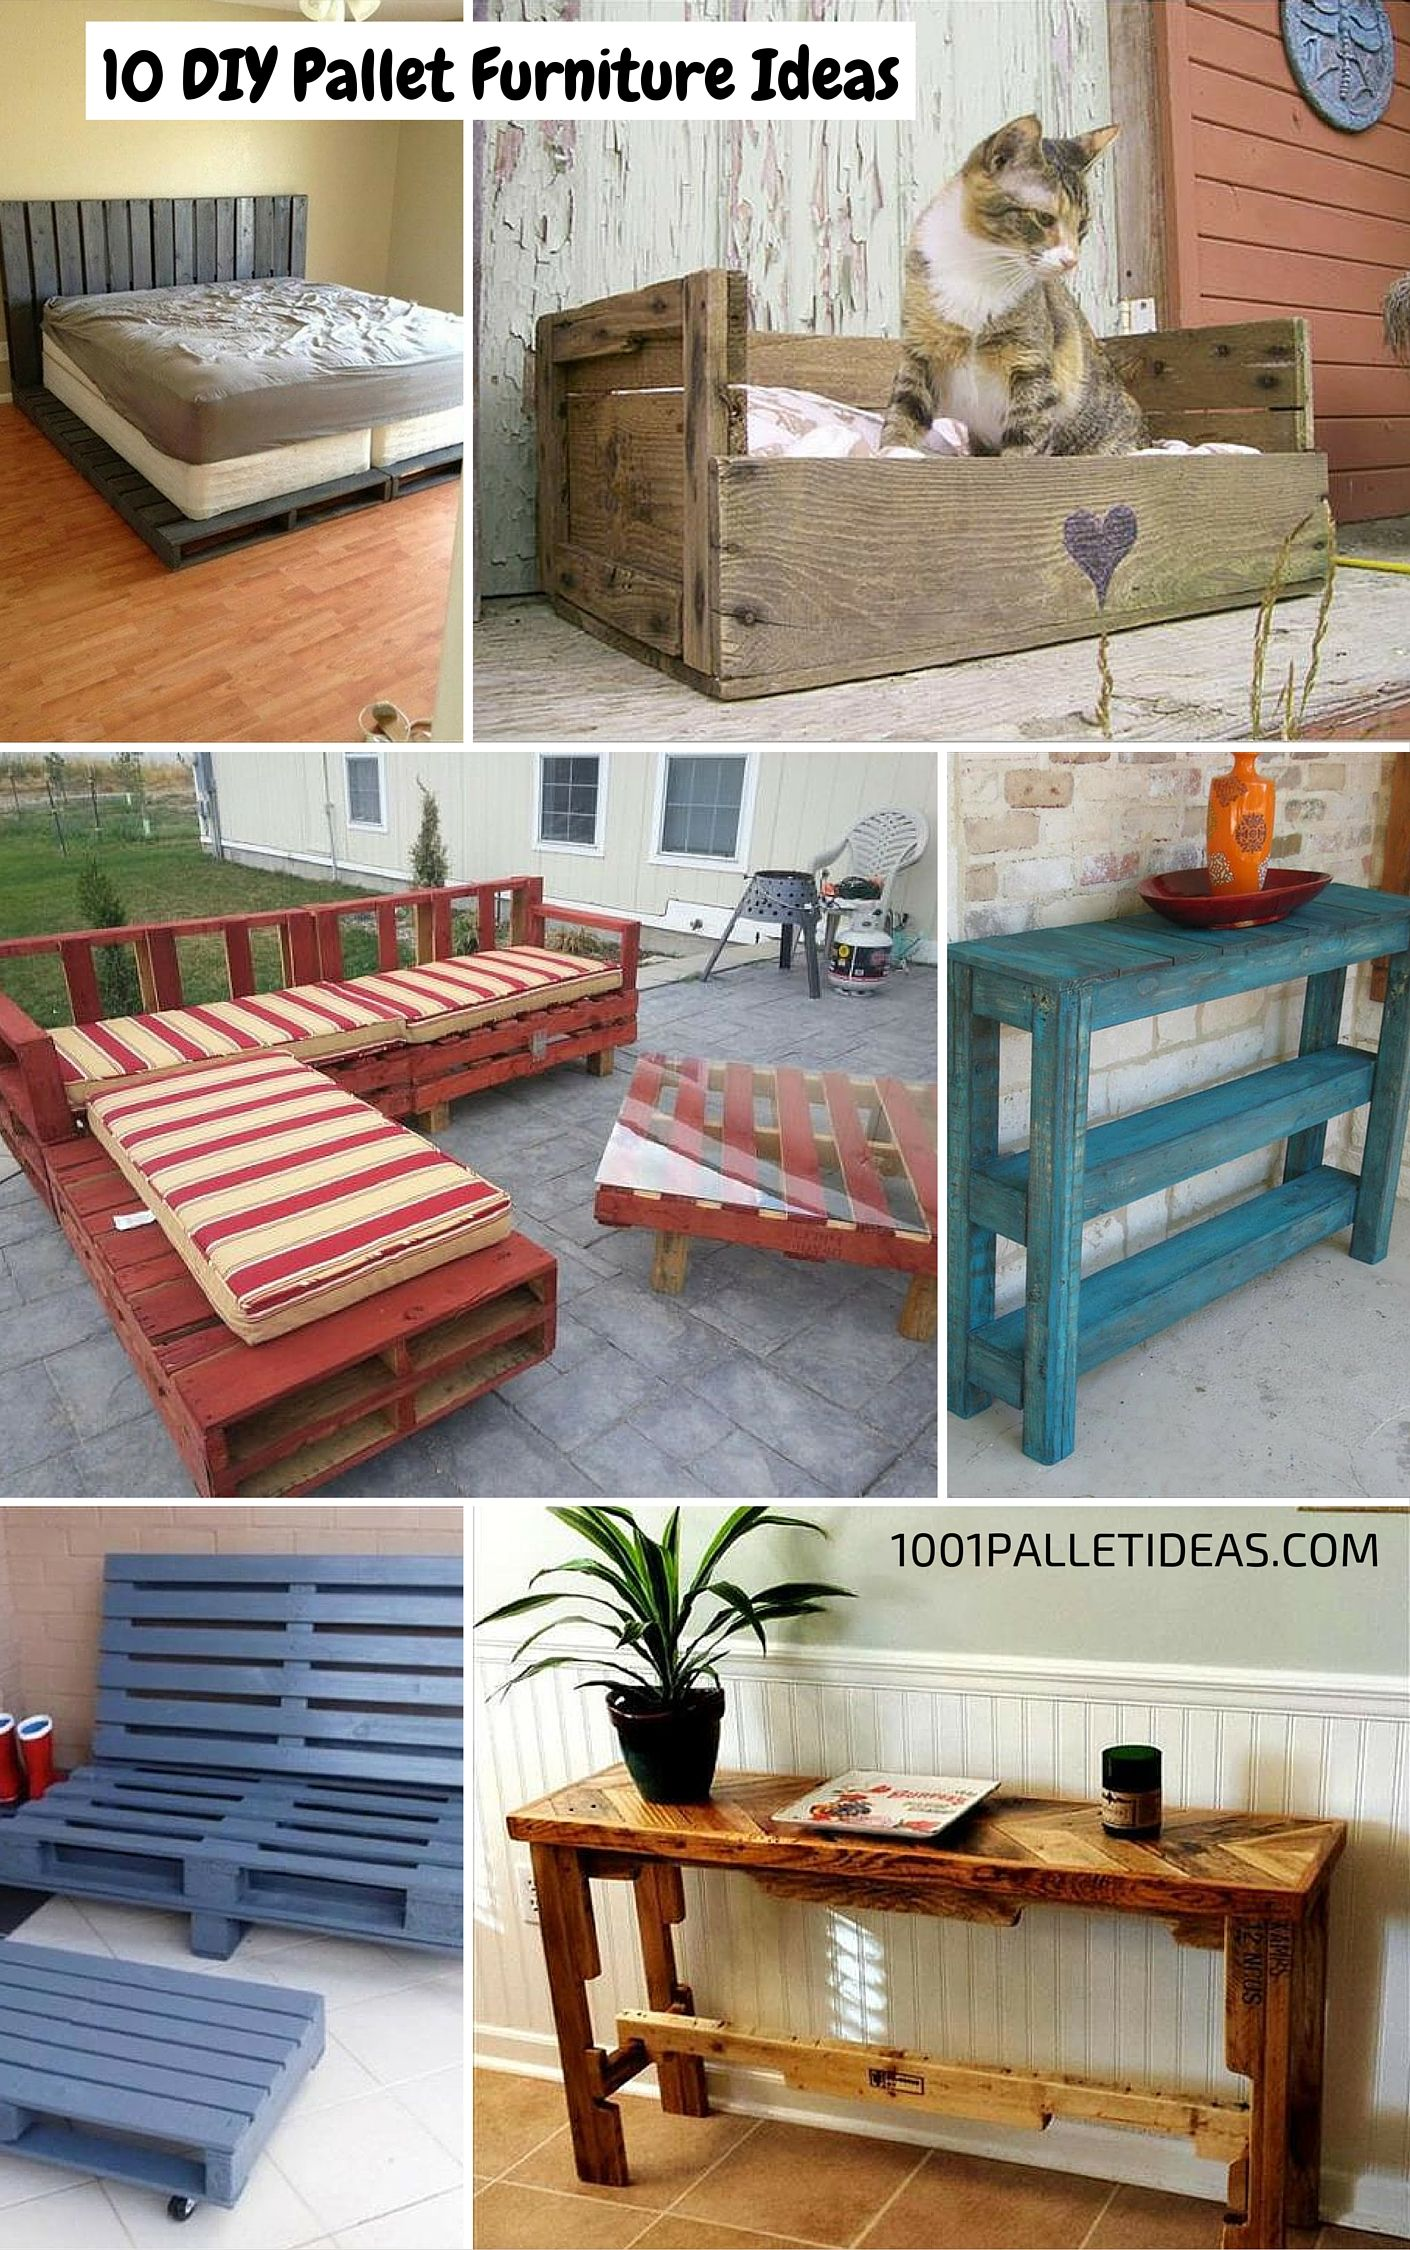 10 Diy Pallet Furniture Ideas 1001 Pallet Ideas All These Projects Are Of 100 Reclai Diy Pallet Furniture Wood Pallet Furniture Pallet Furniture Designs